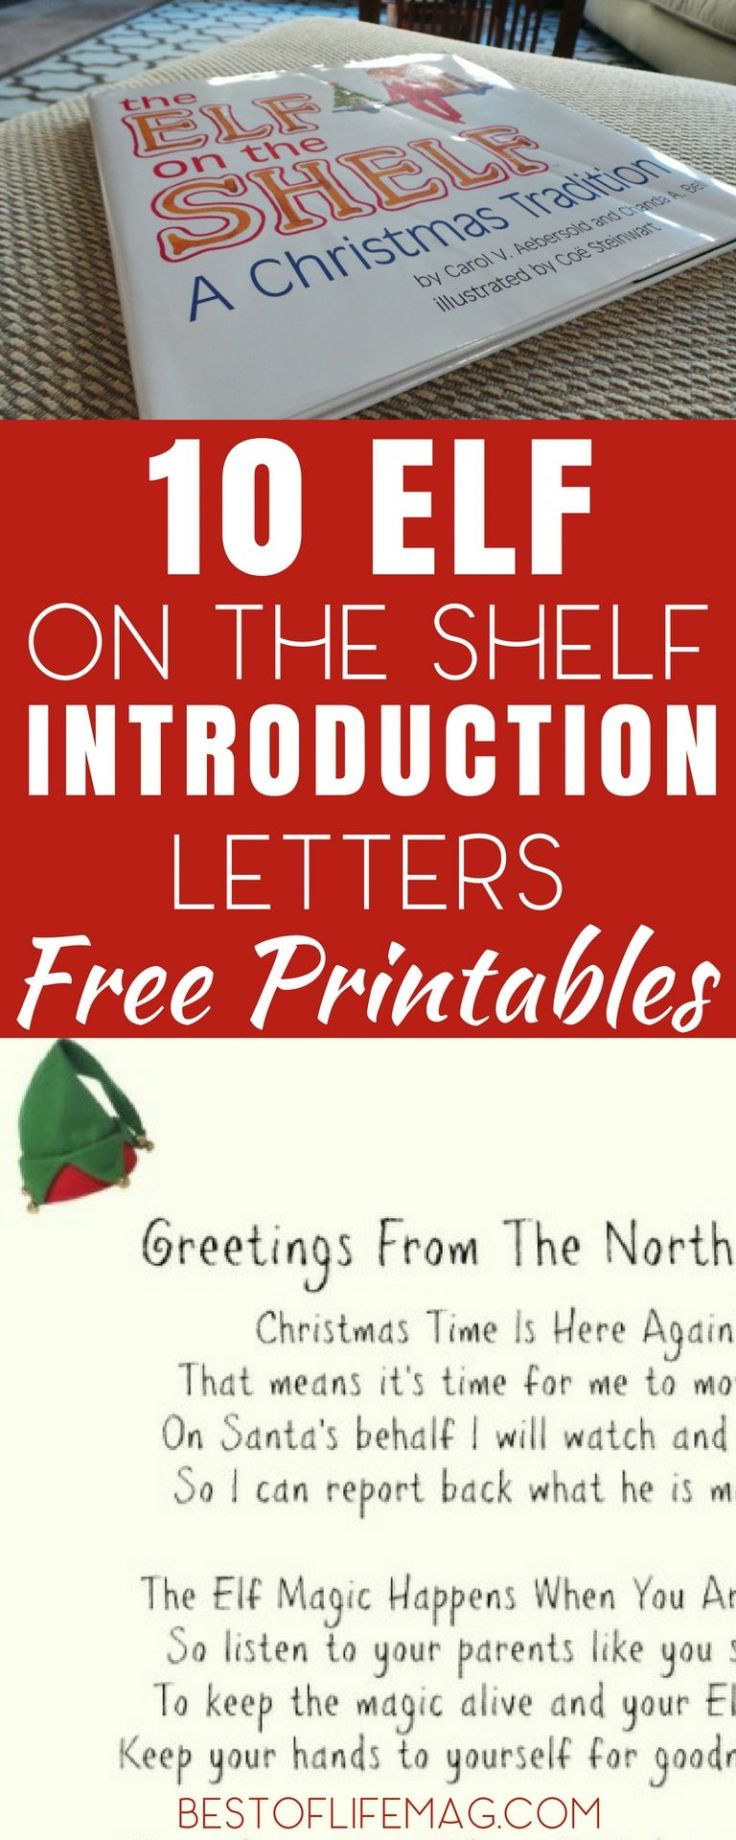 elf on the shelf letters printable best 25 introduction letter ideas on letter 10180 | bede5fb19908027664ba4c8b07f65566